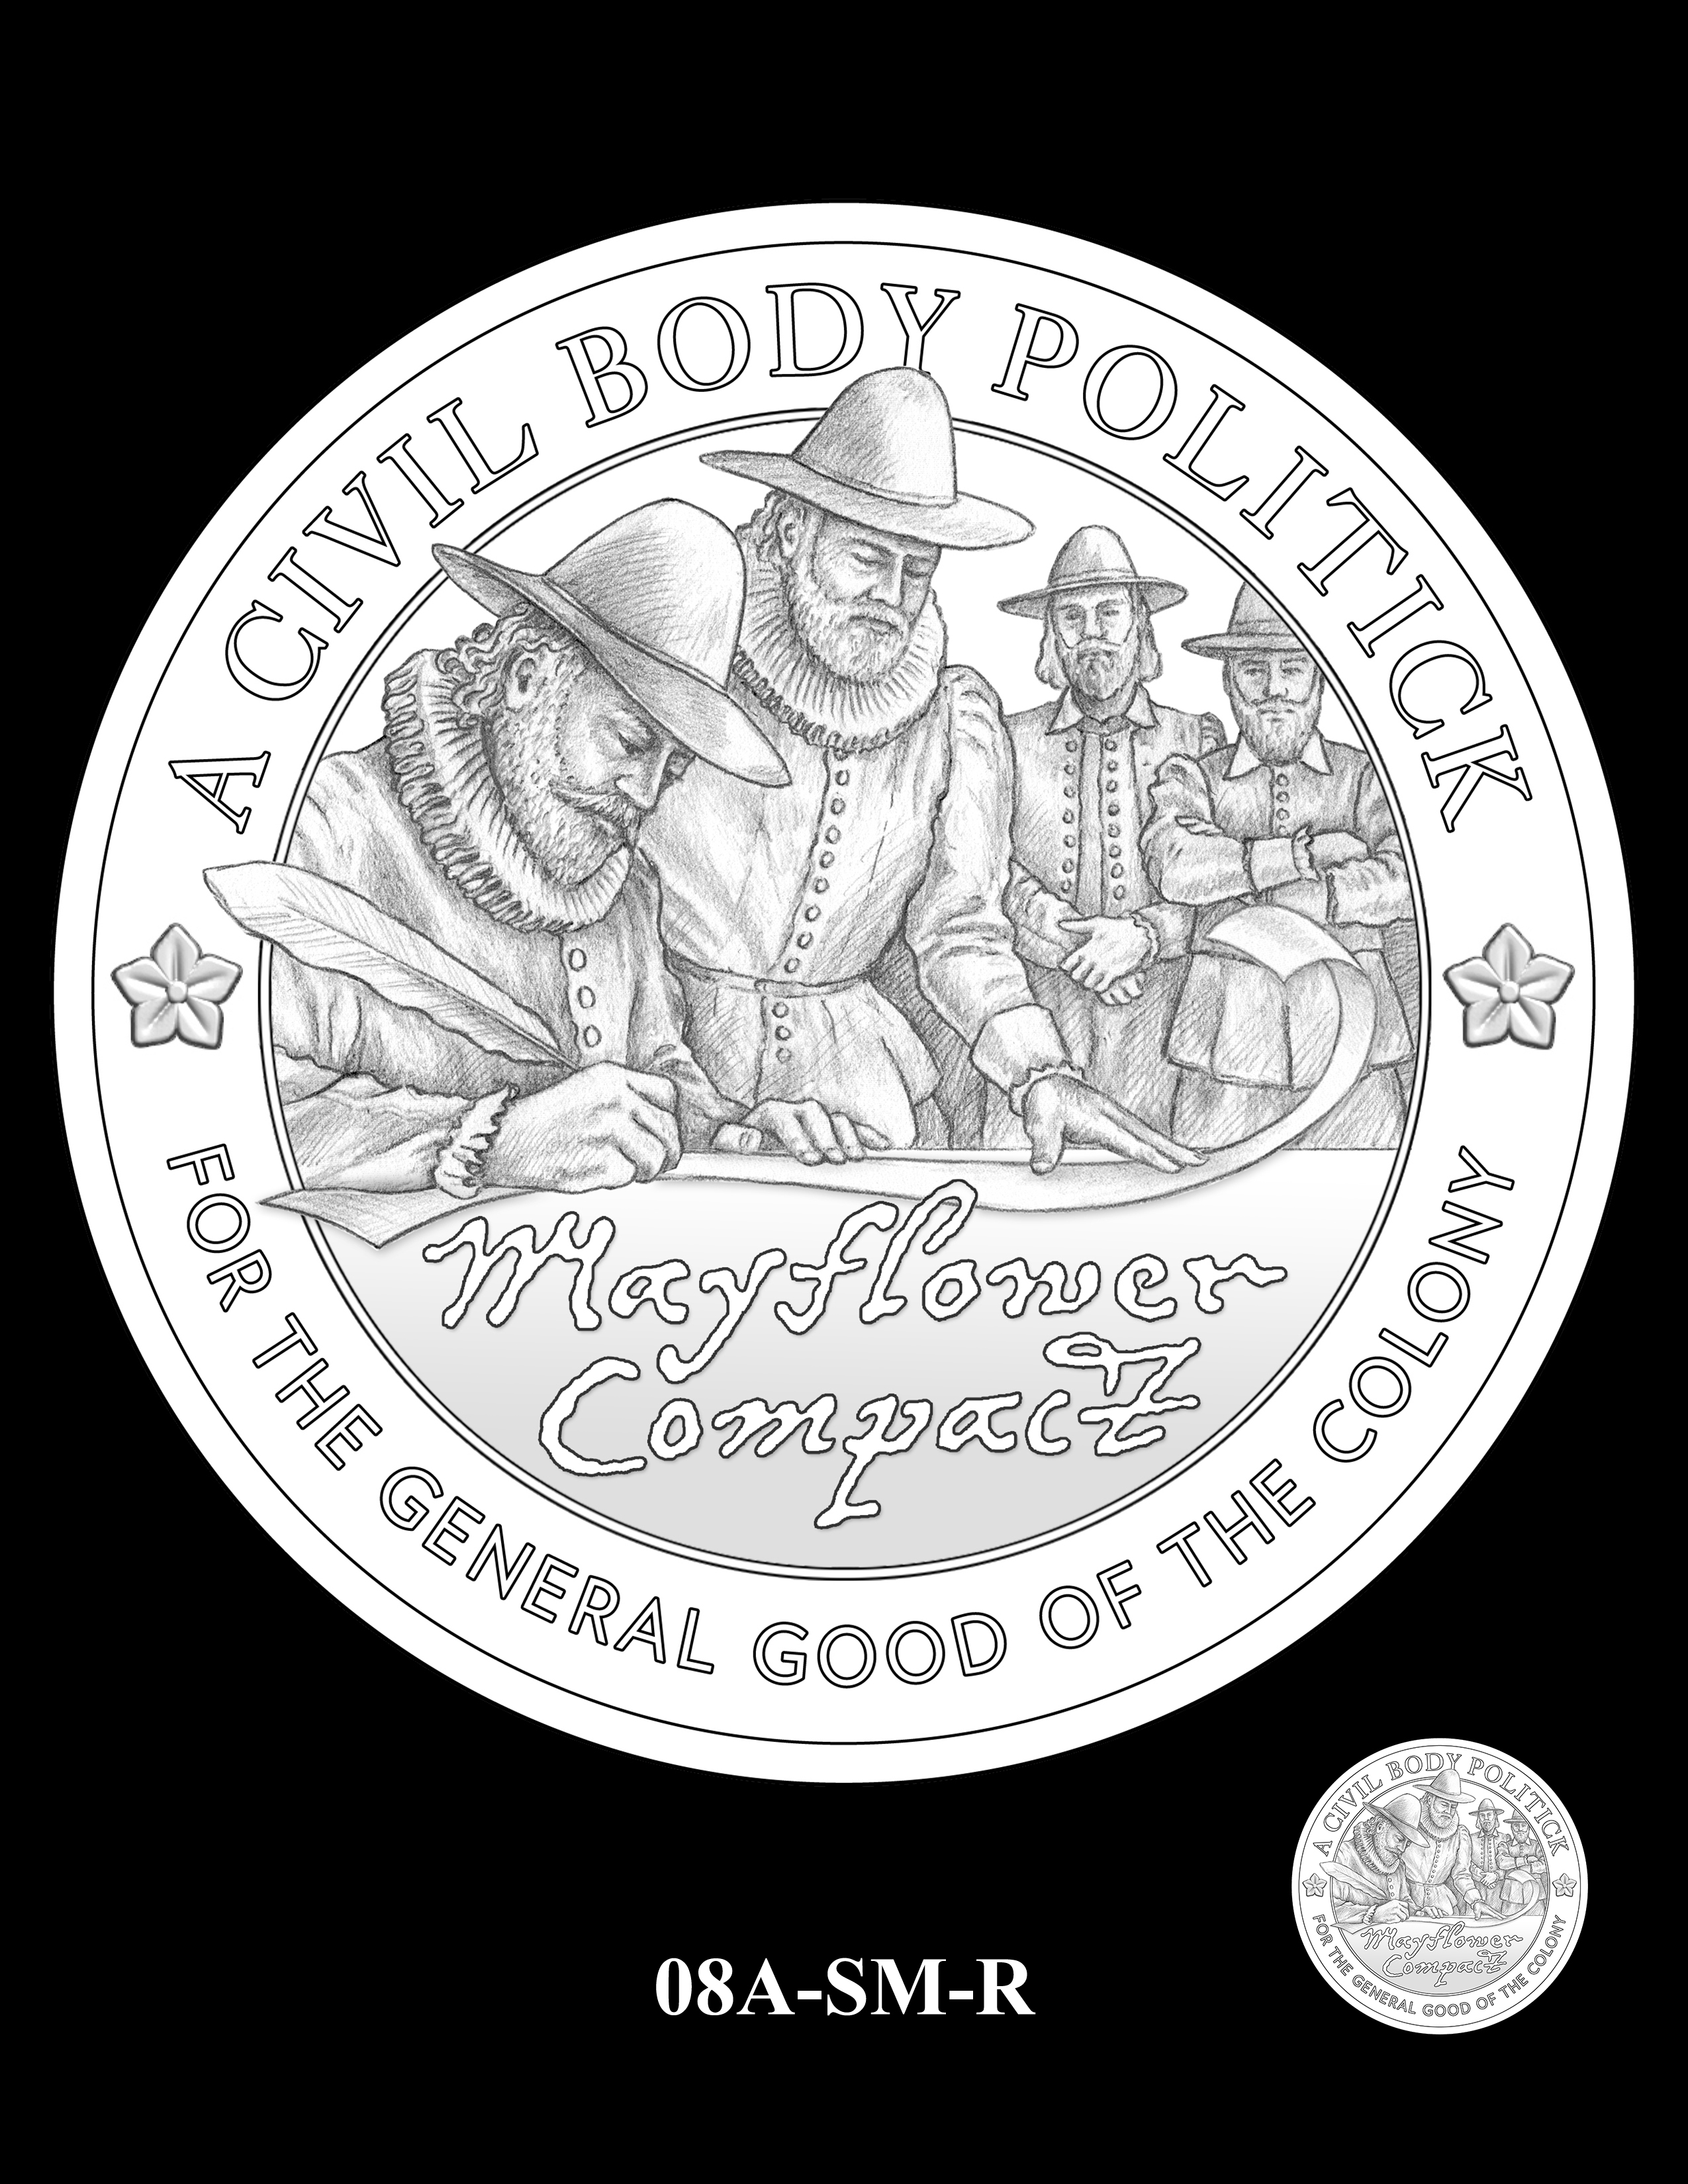 08A-SM-R - 2020 Mayflower 400th Anniversary 24K Gold Coin & Silver Medal Program